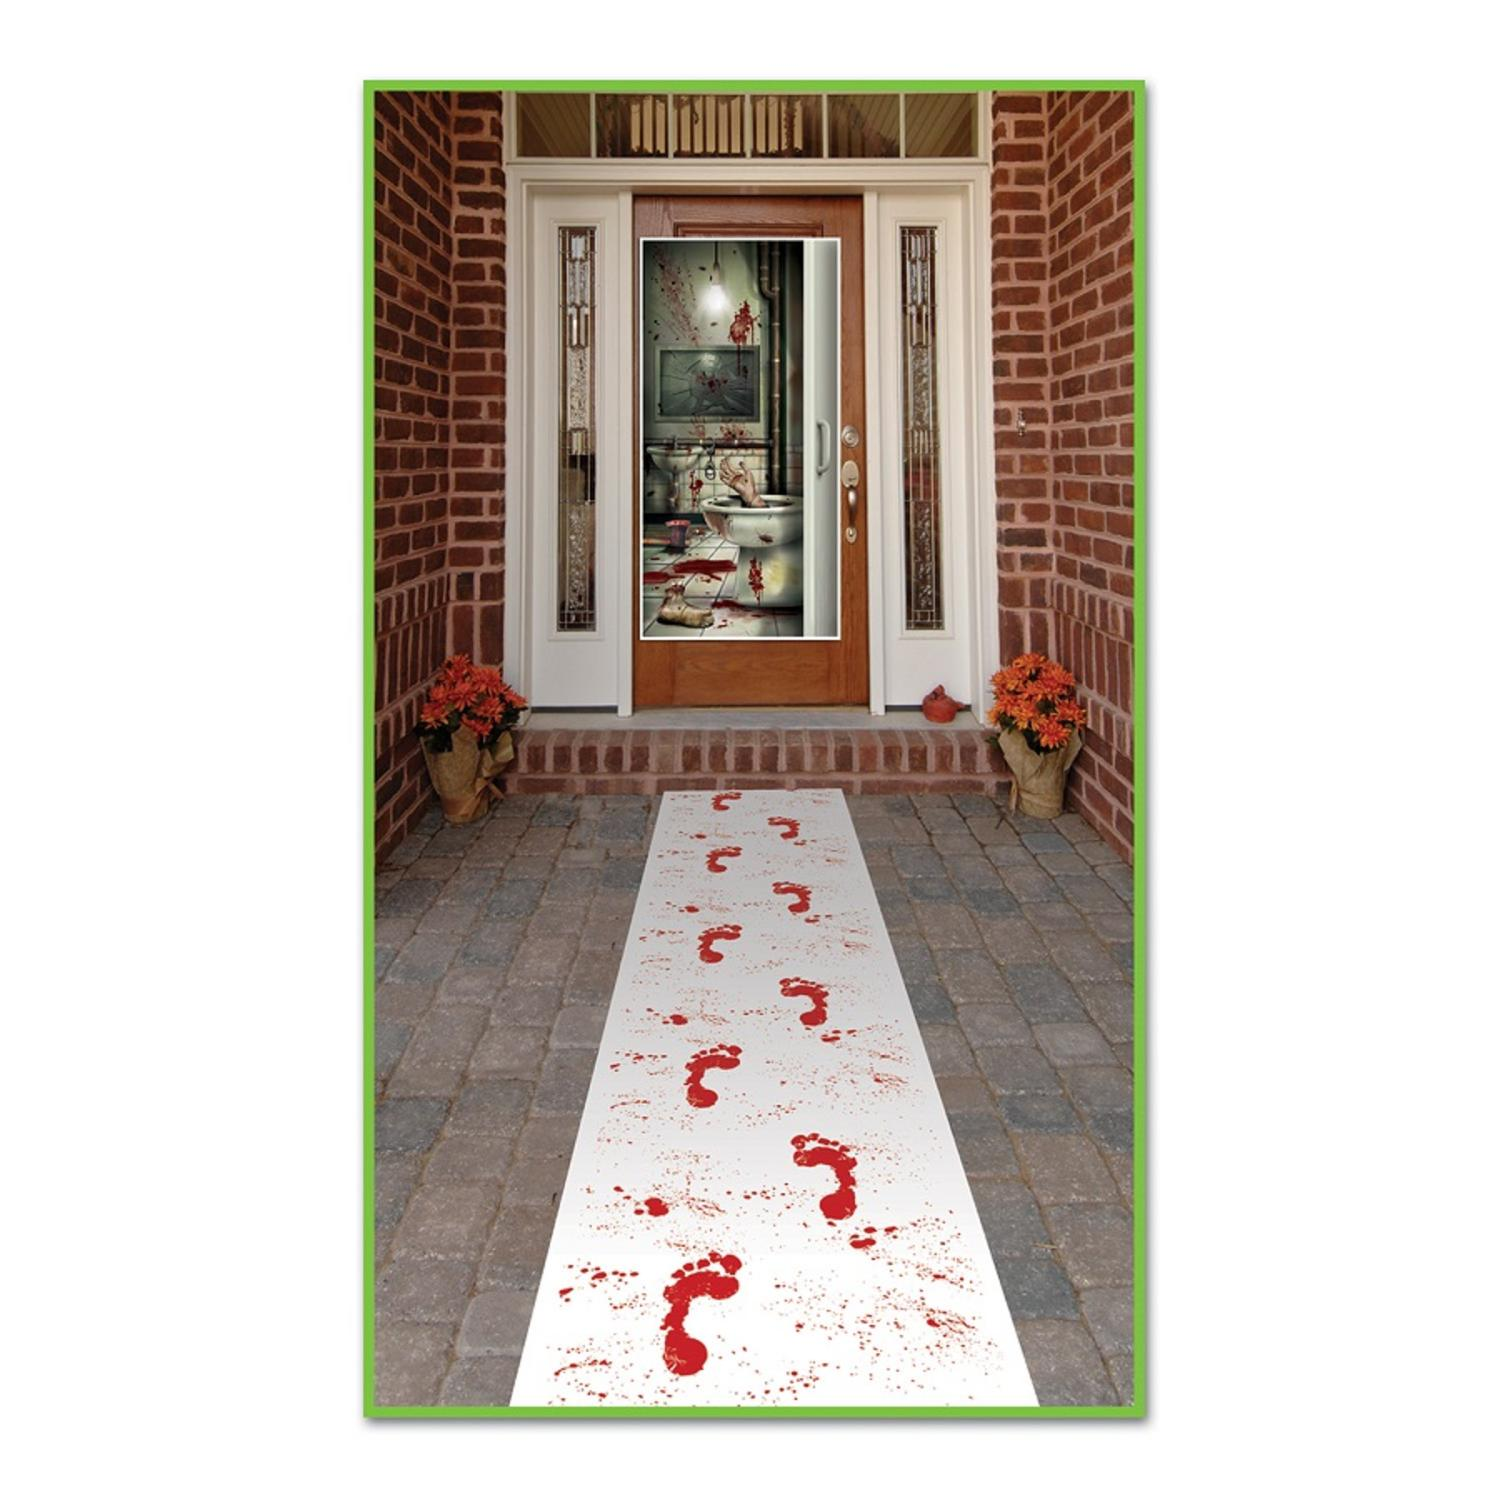 Pack of 6 Halloween Themed Bloody Footprints Path Runner Party Decorations 10'